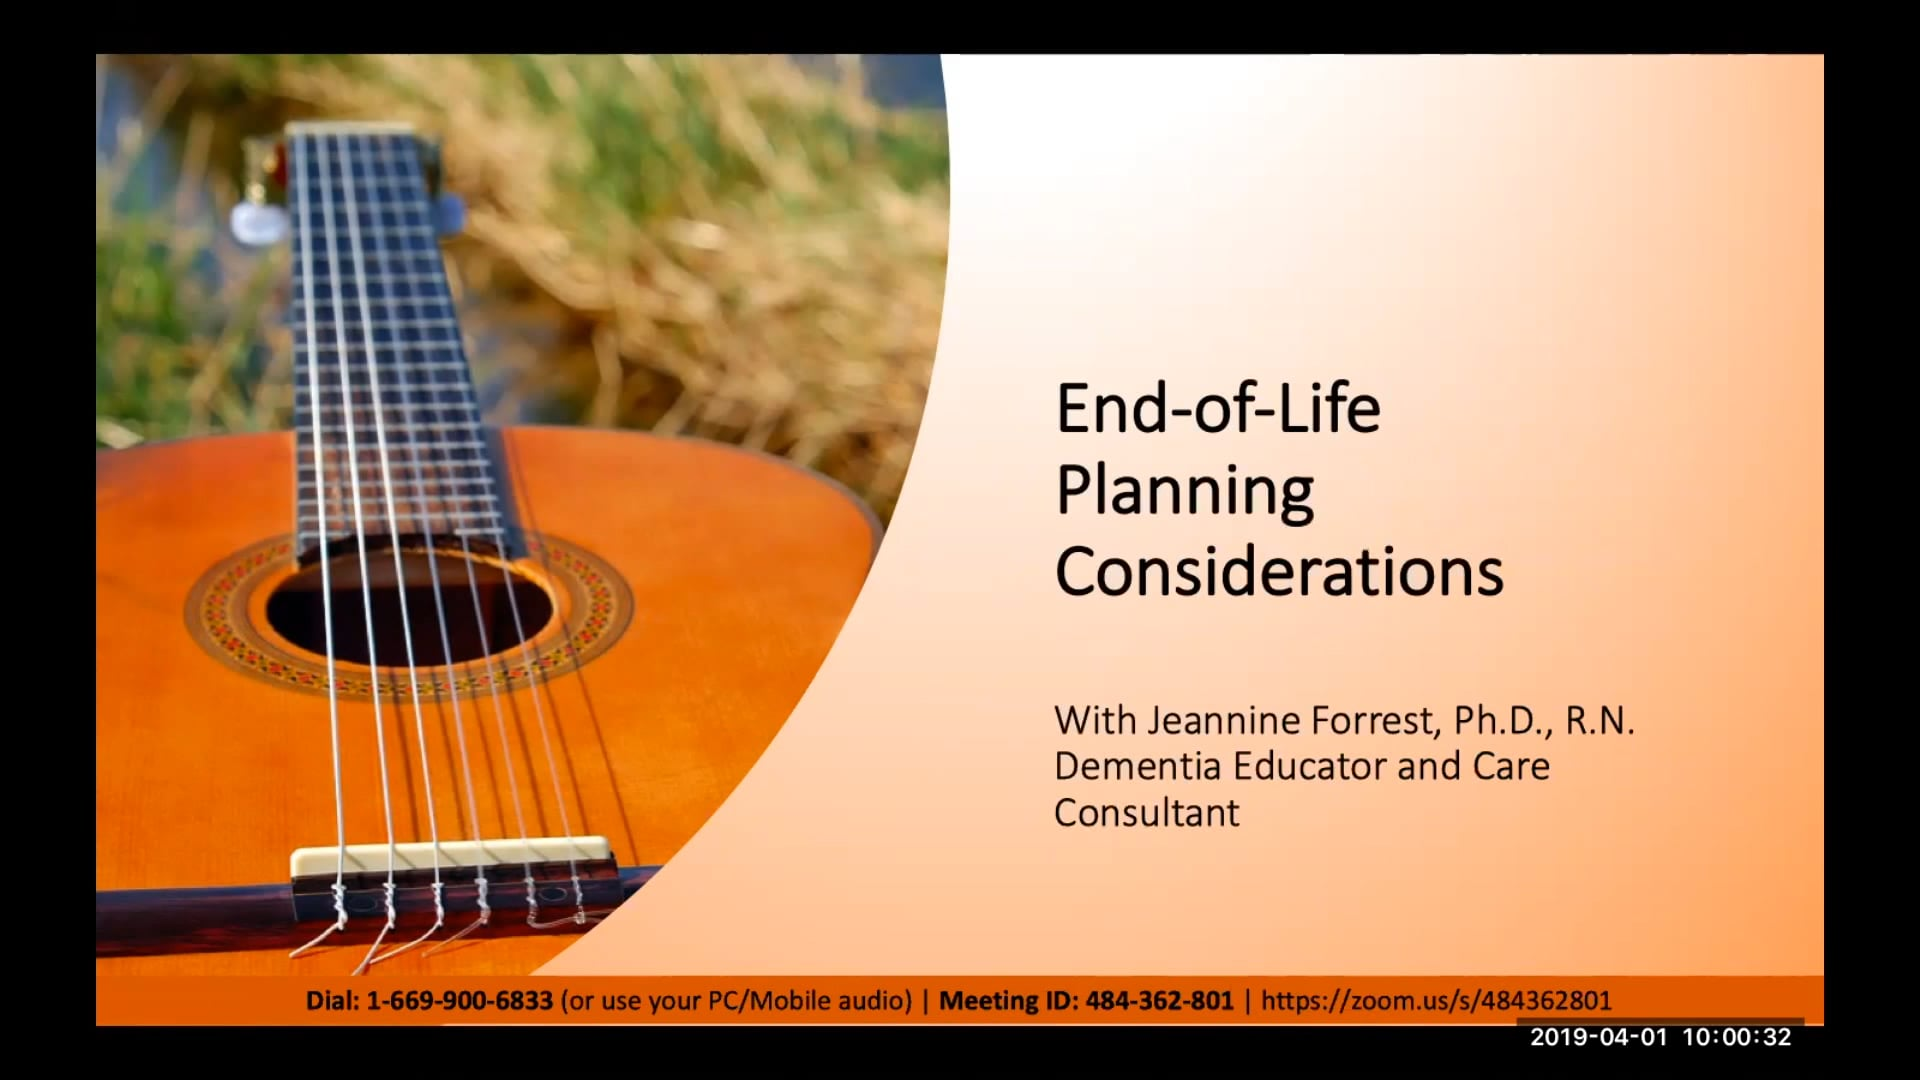 End-of-Life Planning Considerations